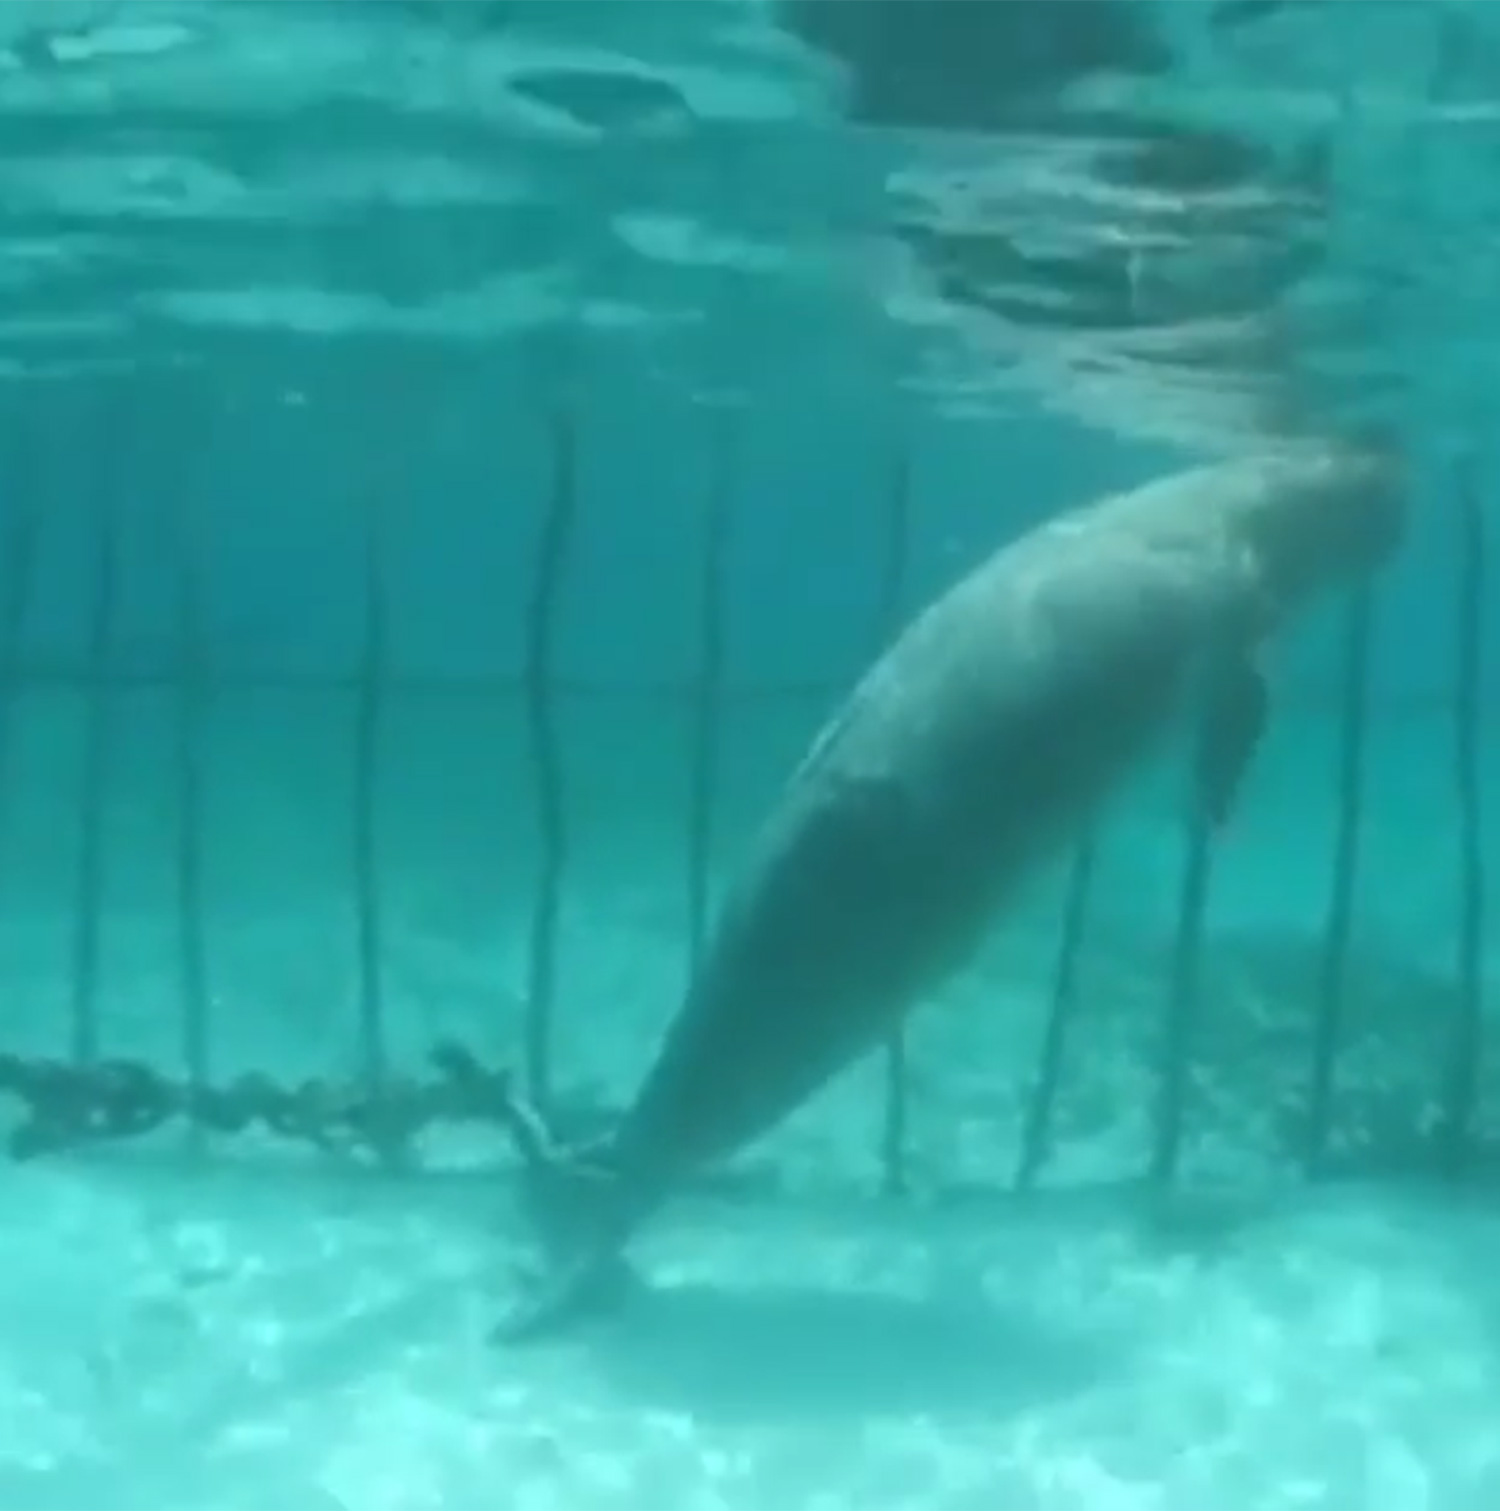 dugong-cage-indonesie-4